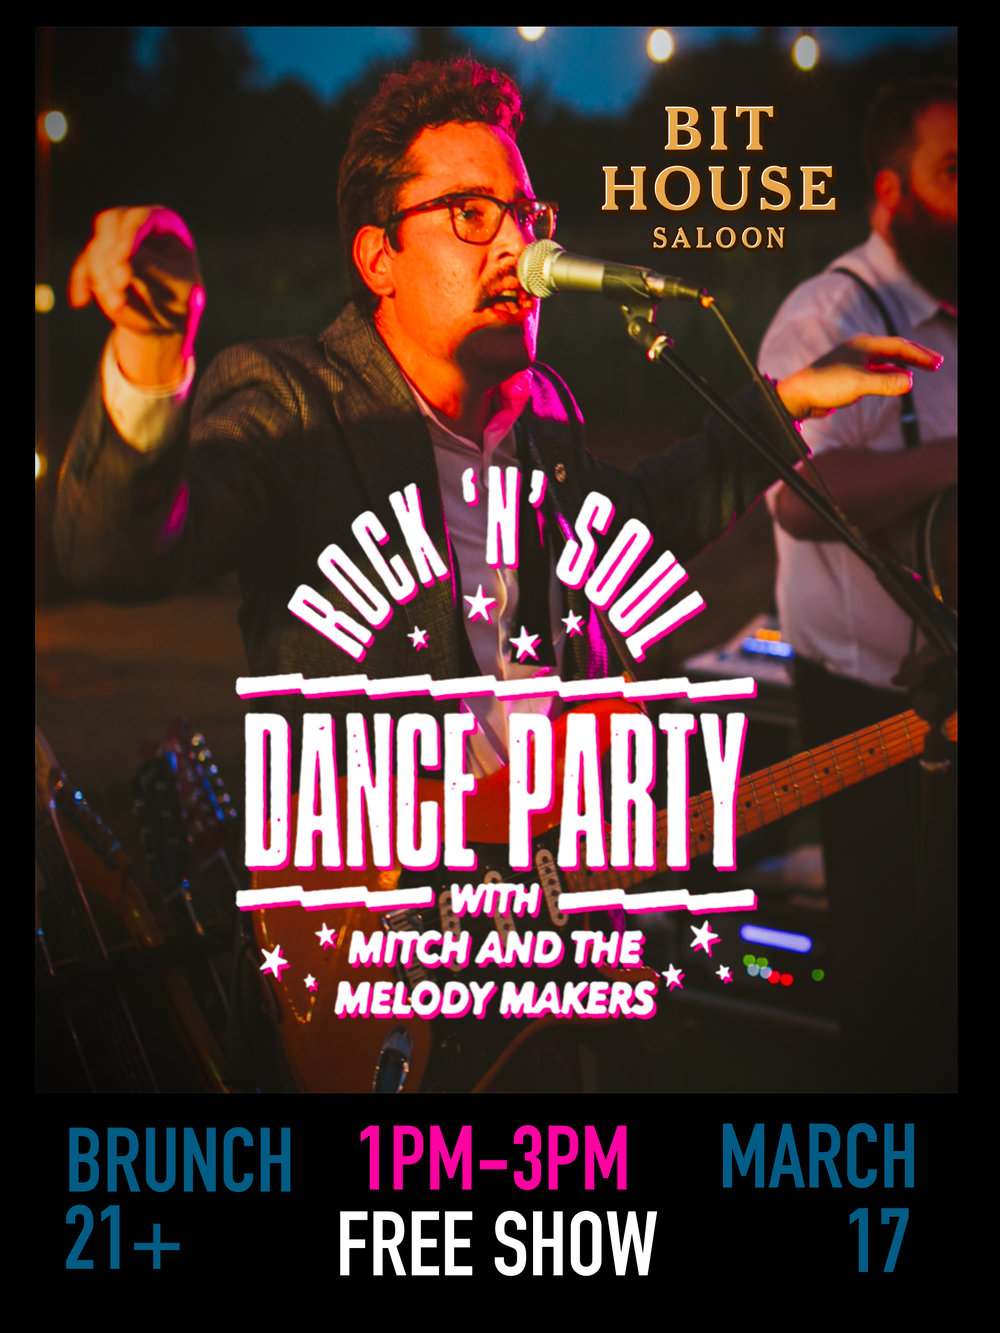 Are you ready to dance? Mitch and the Melody Makers bring their Rock 'N' Soul Dance Party to the Bithouse Saloon for a Soul Brunch. Made up of members of some of Portland's best new bands, the Makers bring rock and soul dance hits from the 50's, 60's, and more that get every person out of their seats on onto the dance floor. Come sip a mimosa and dance!